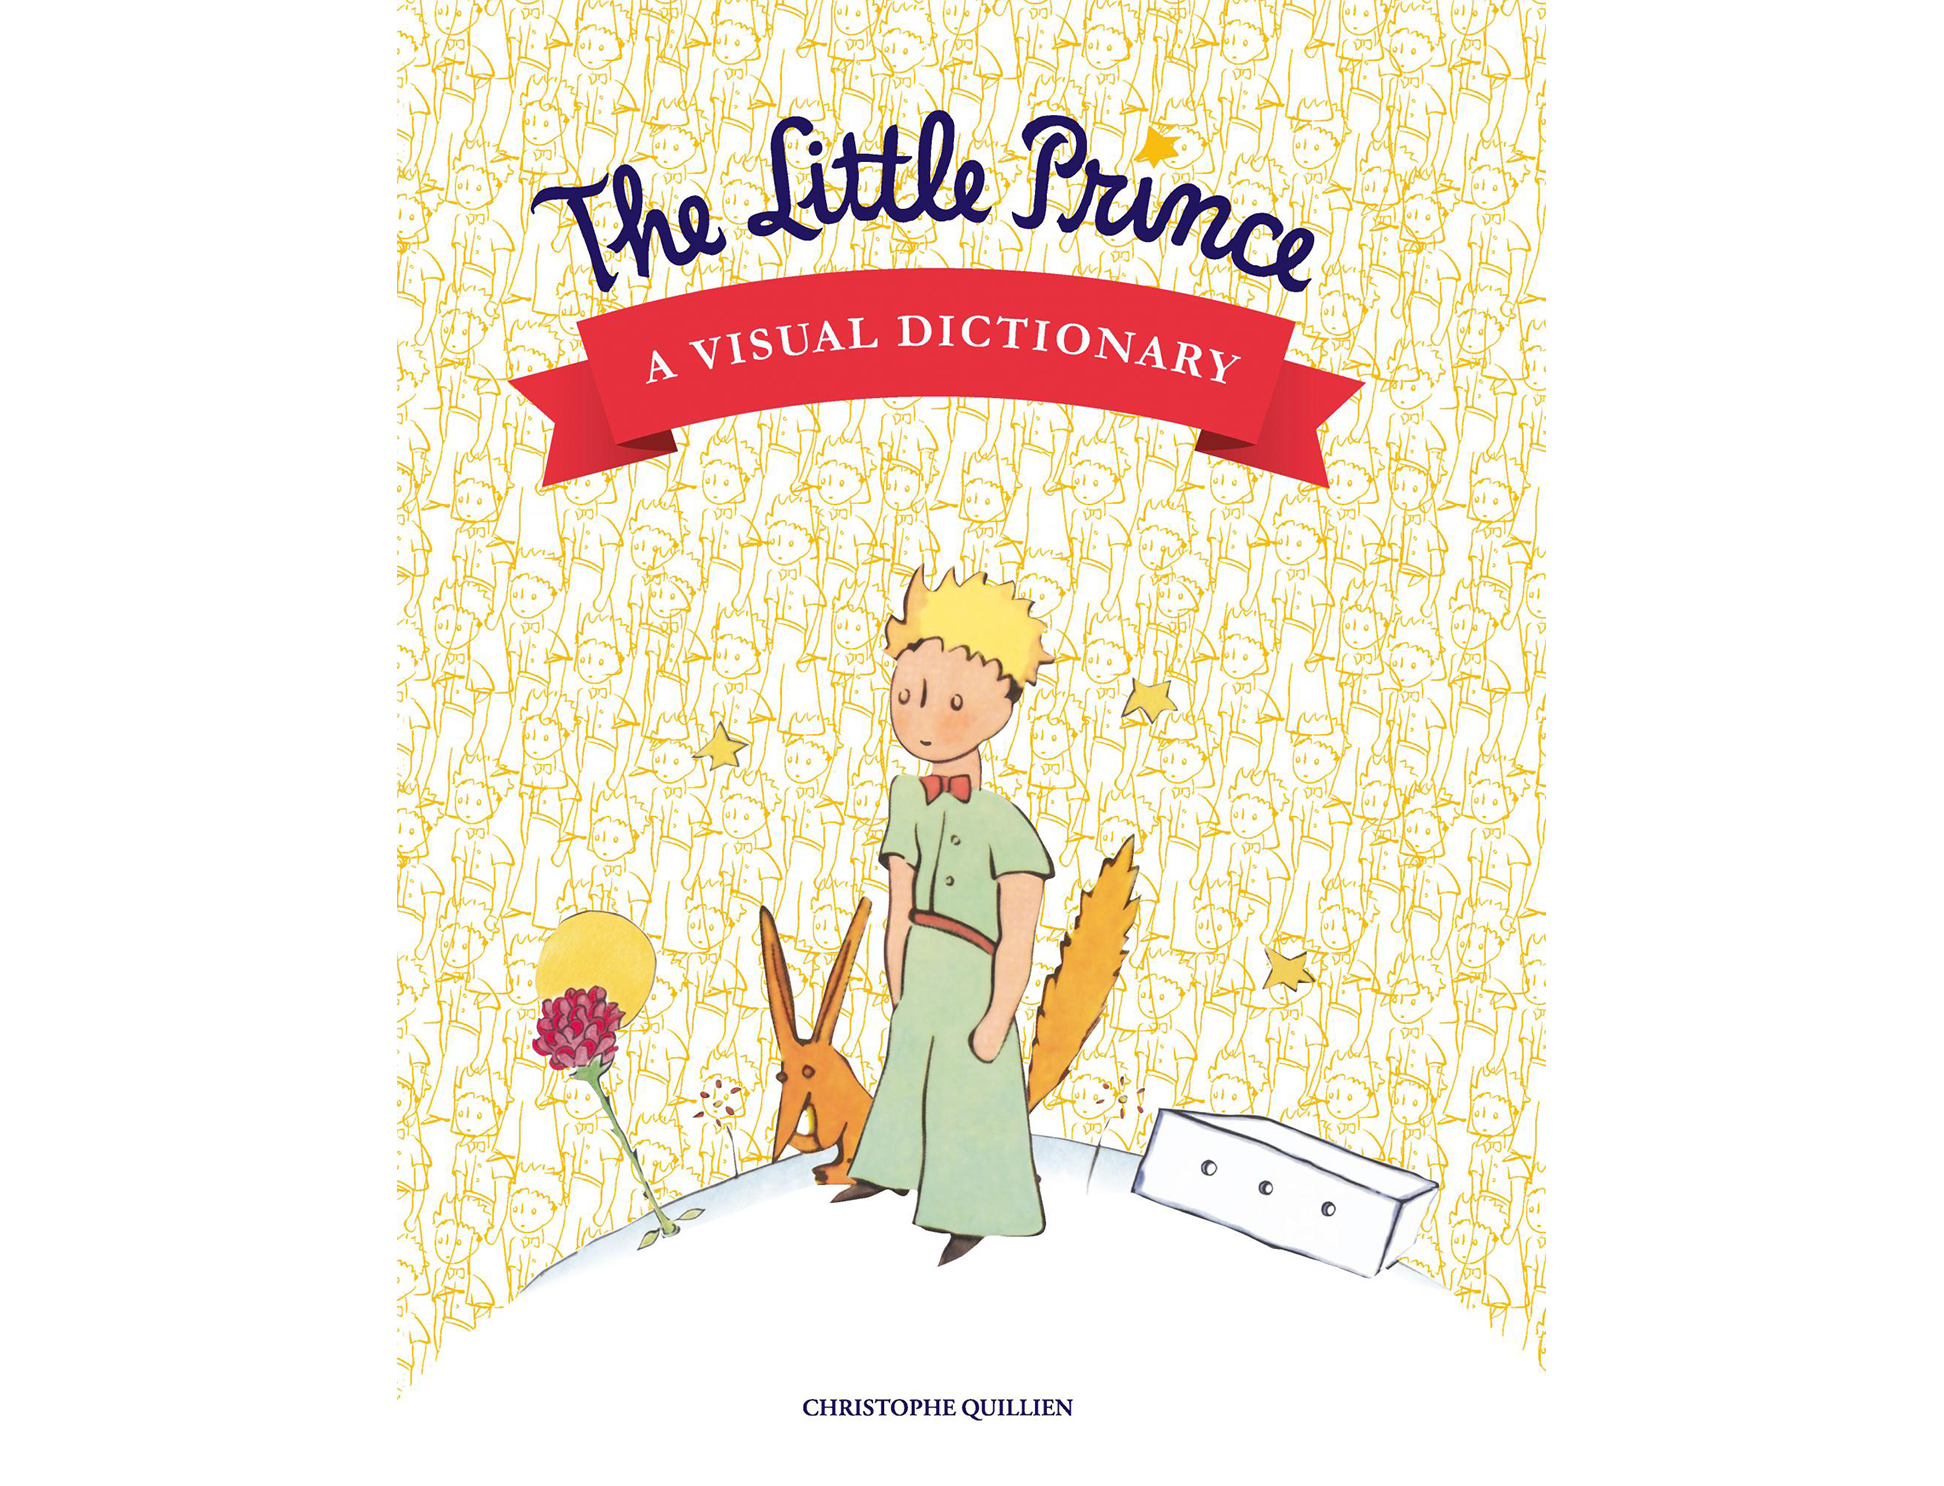 The Little Prince: A Visual Dictionary